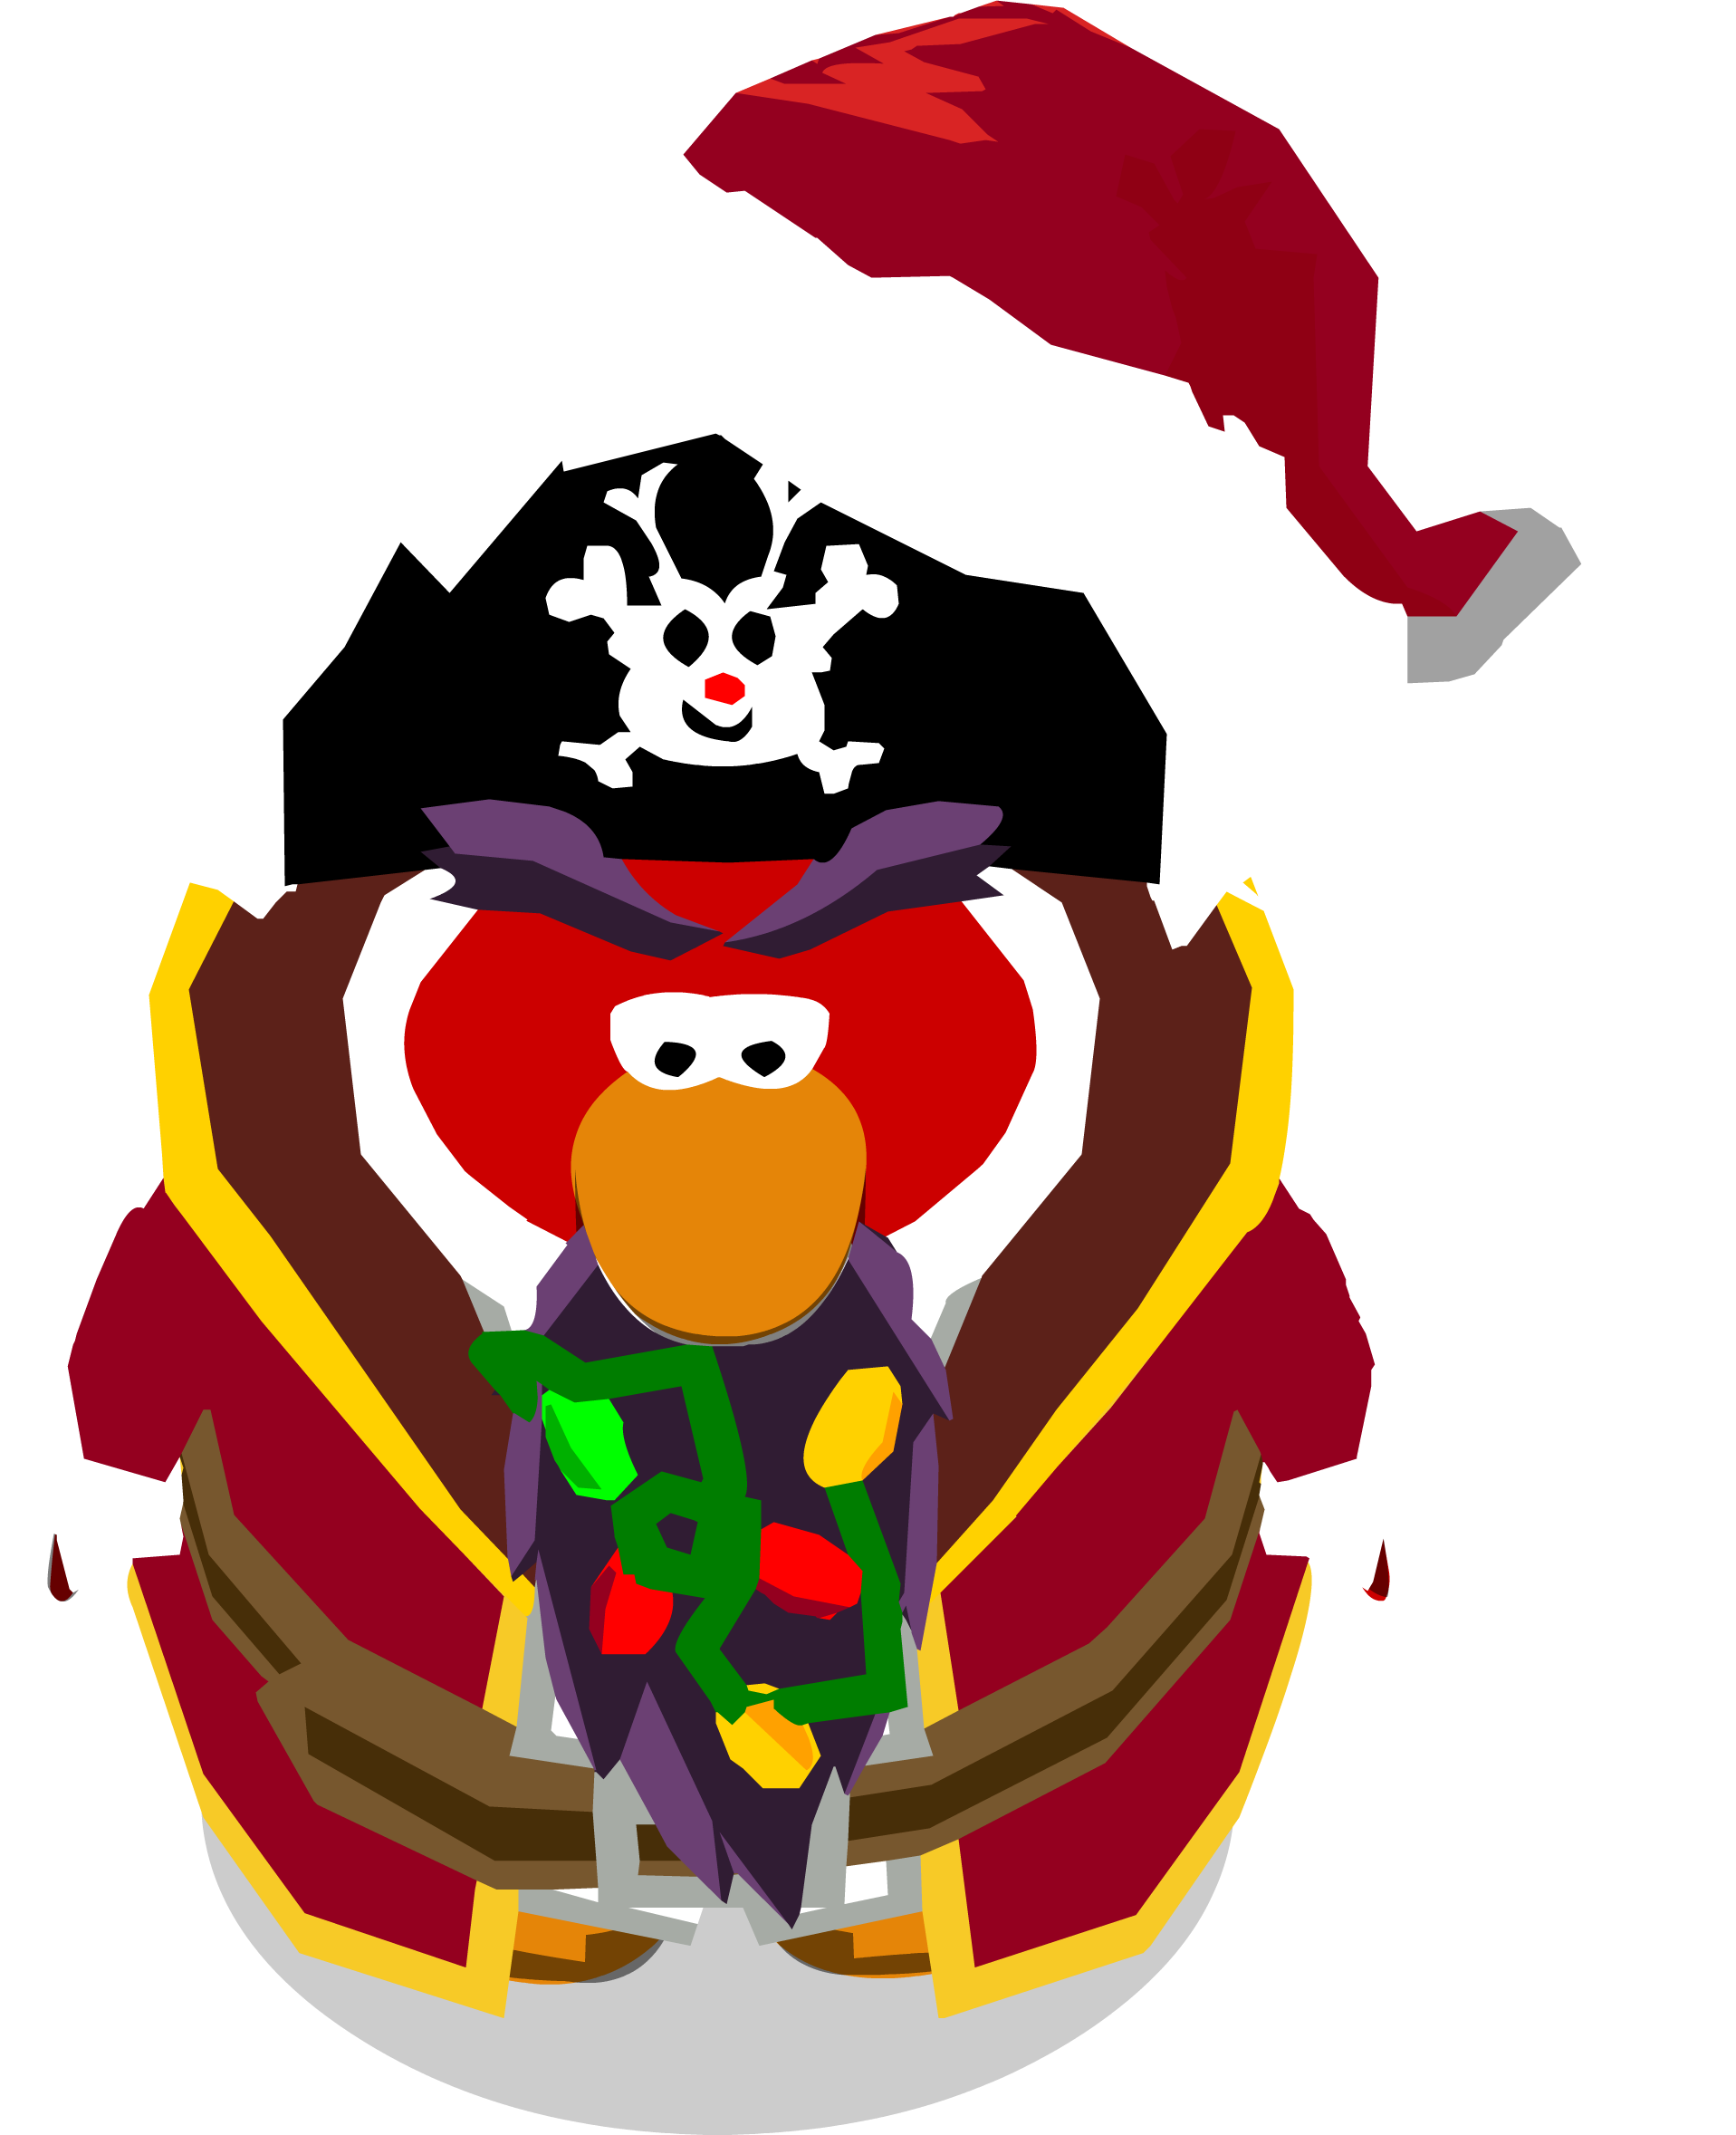 File:Rh official santa 2013.png